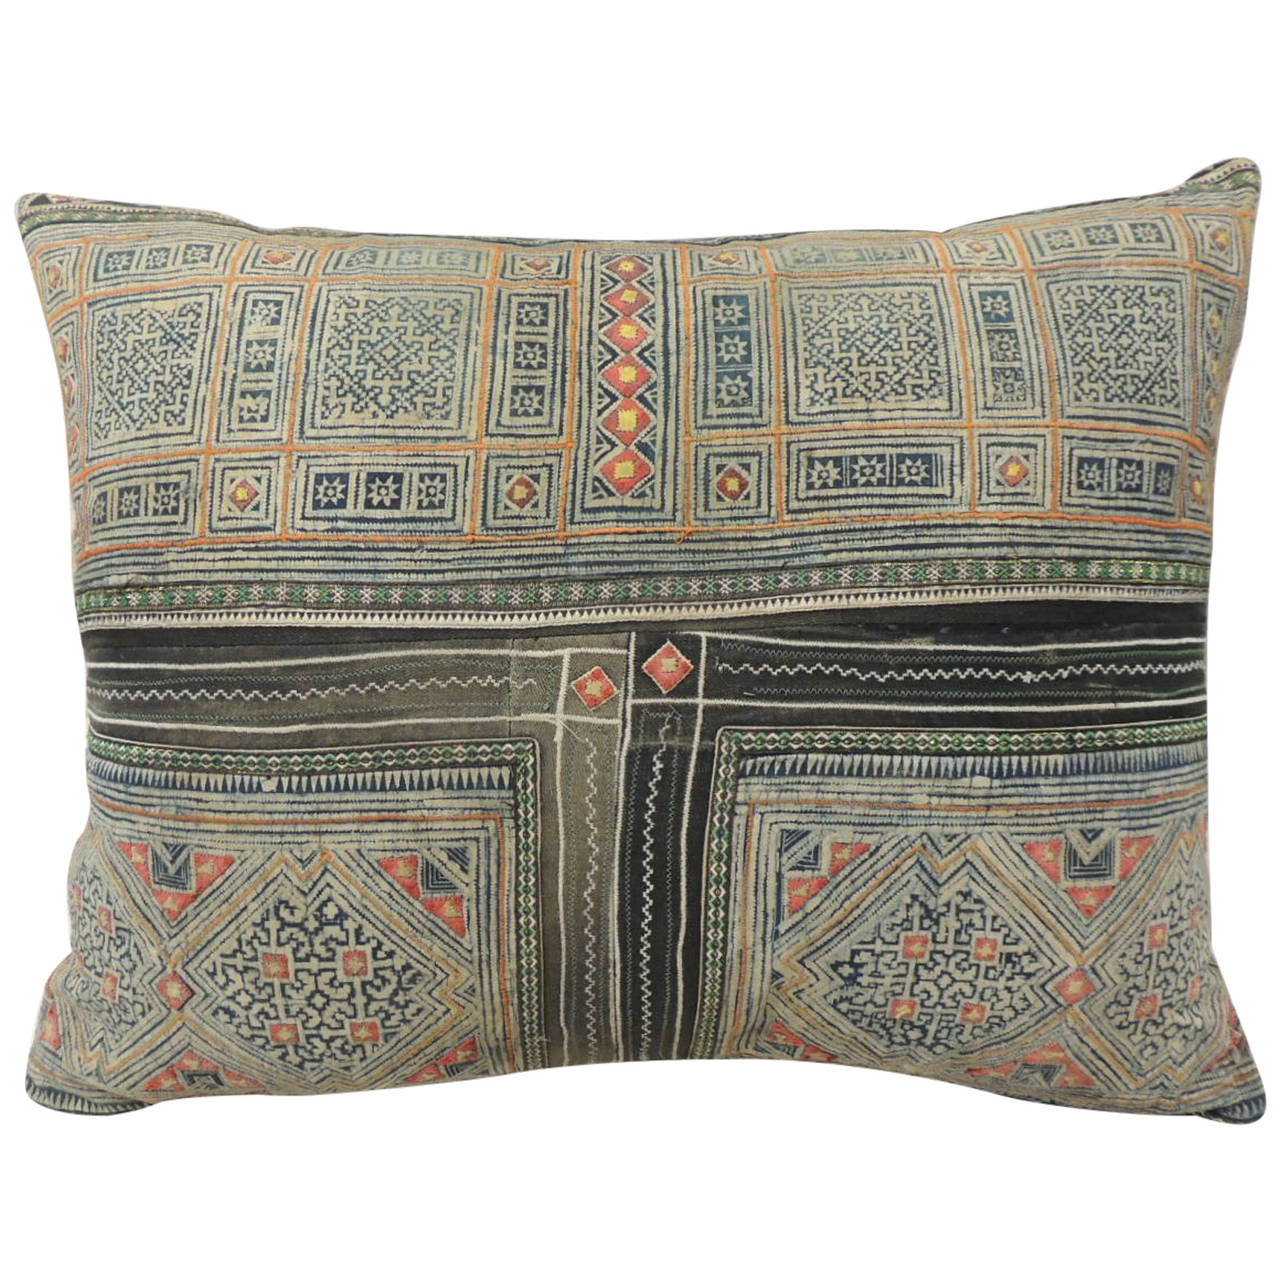 Large patchwork embroidery miao pillow at stdibs